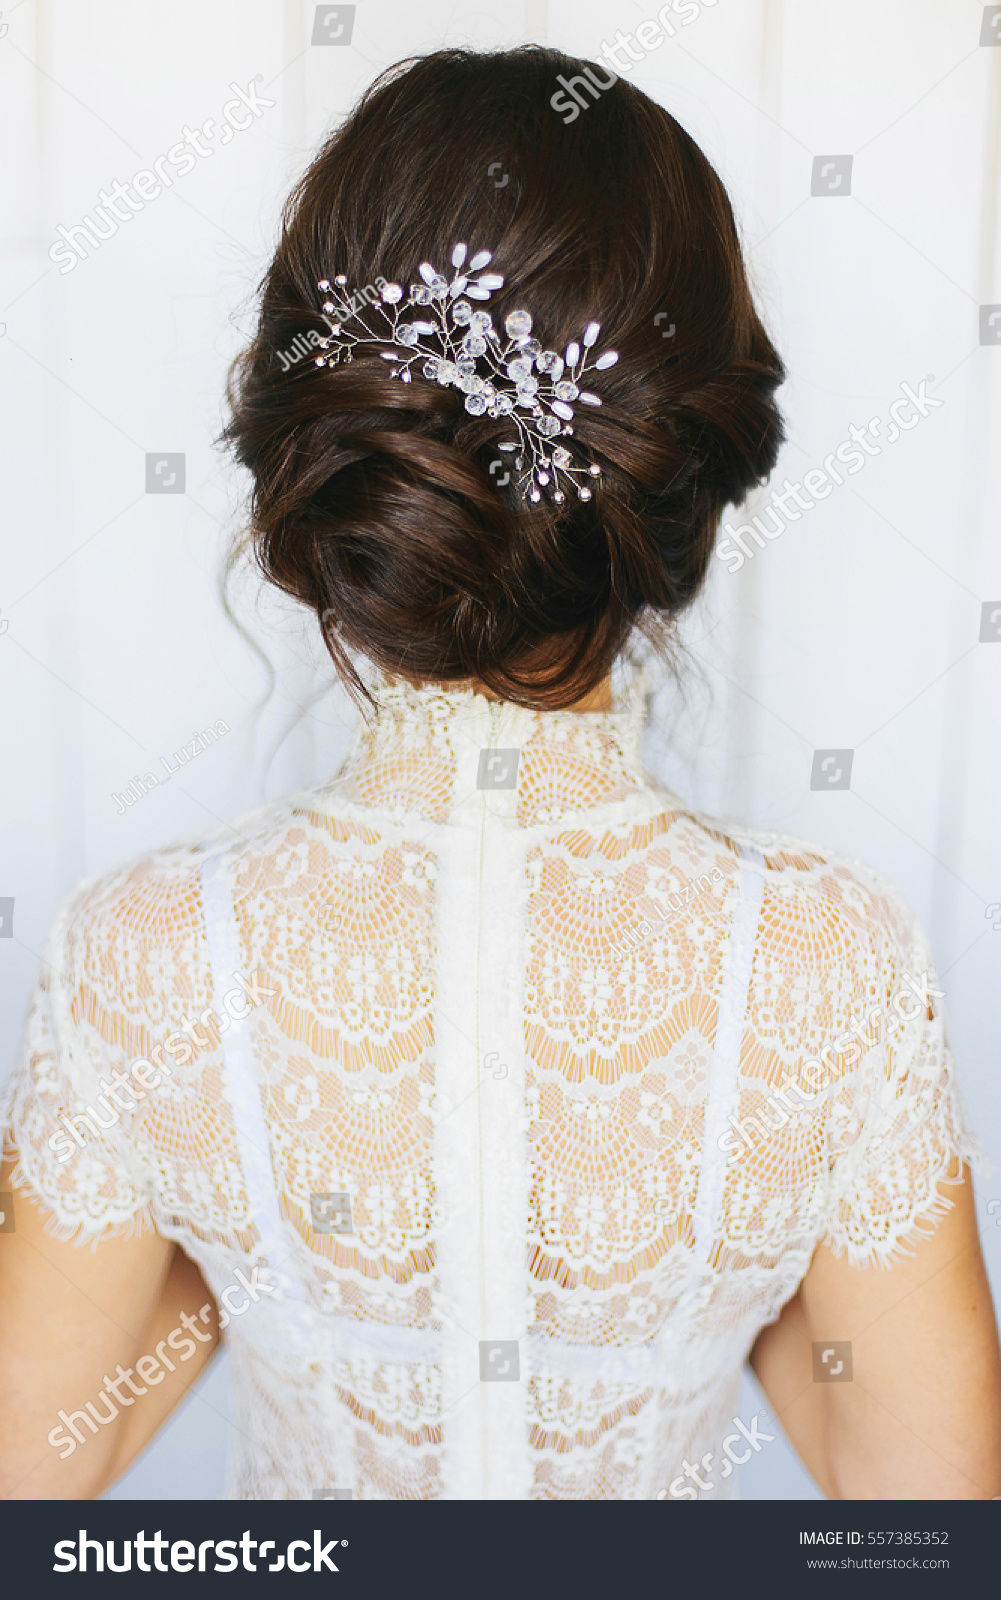 Tender Wedding Stylish Hairstyle Accessories Elegant Stock Photo ...